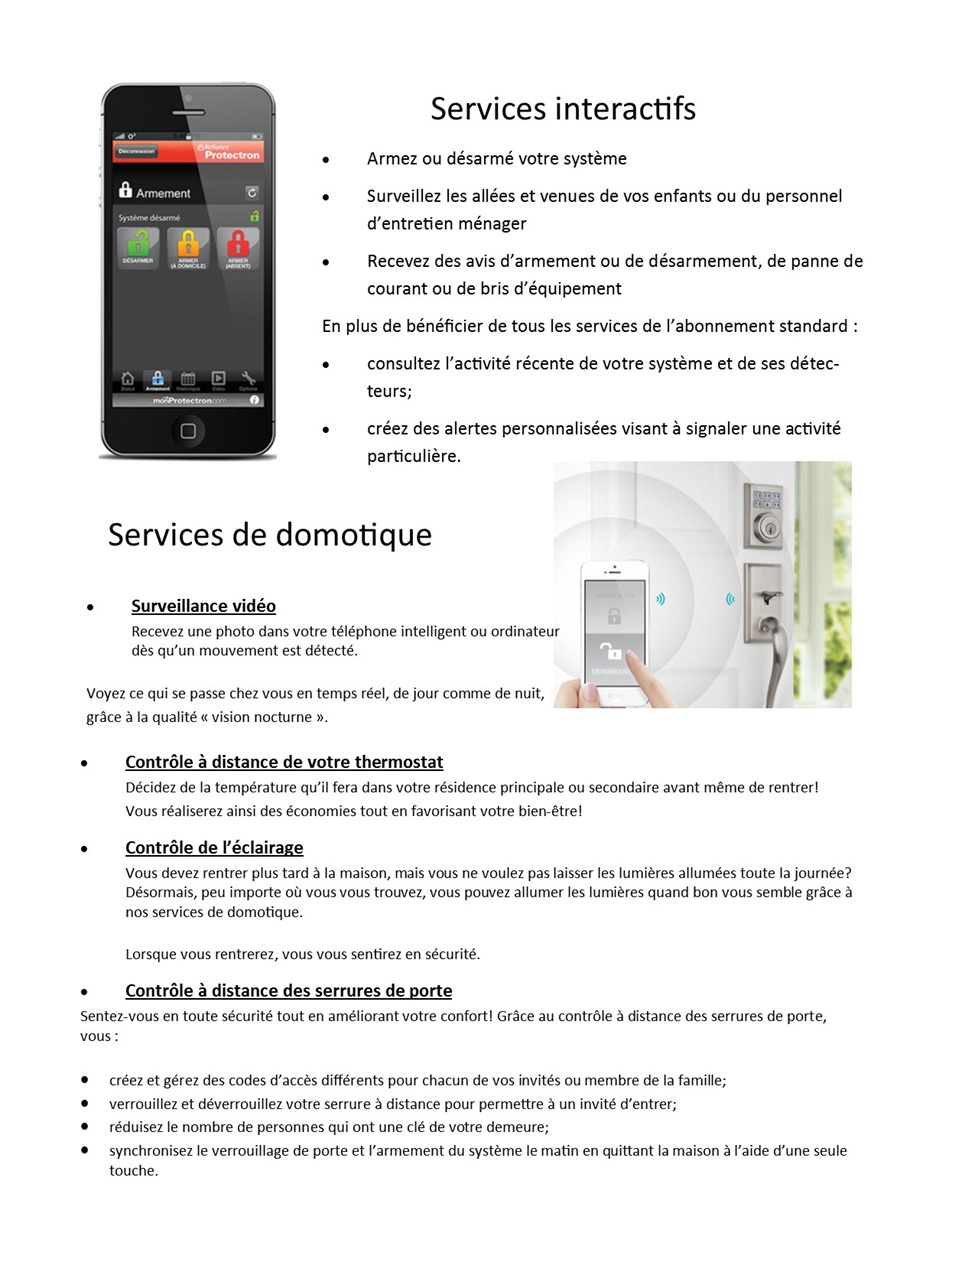 Services interactifs